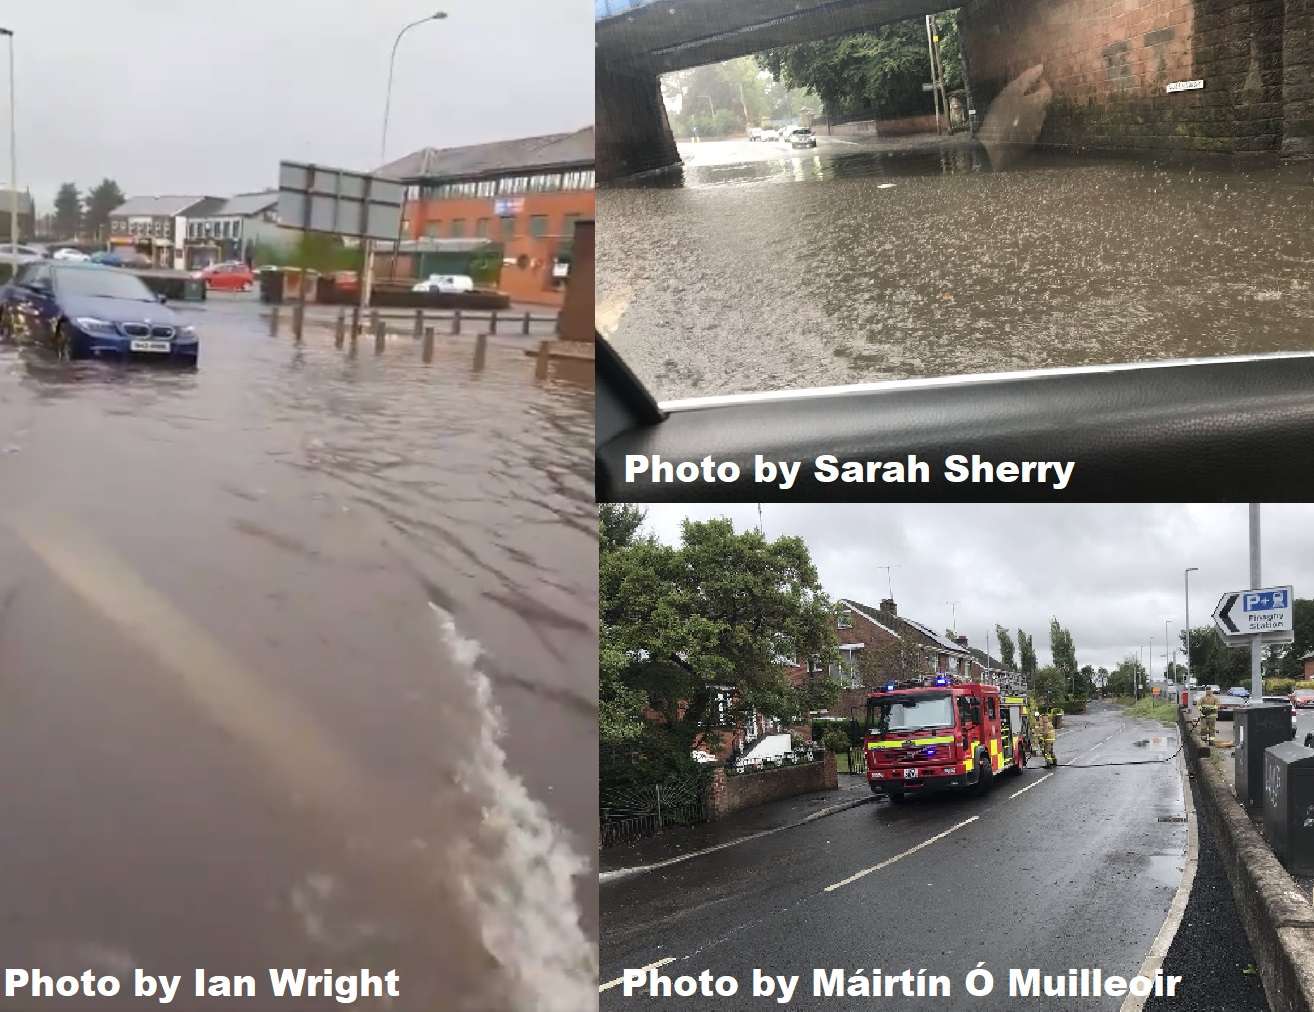 Some of the flooding across Northern Ireland today around Down and Antrim